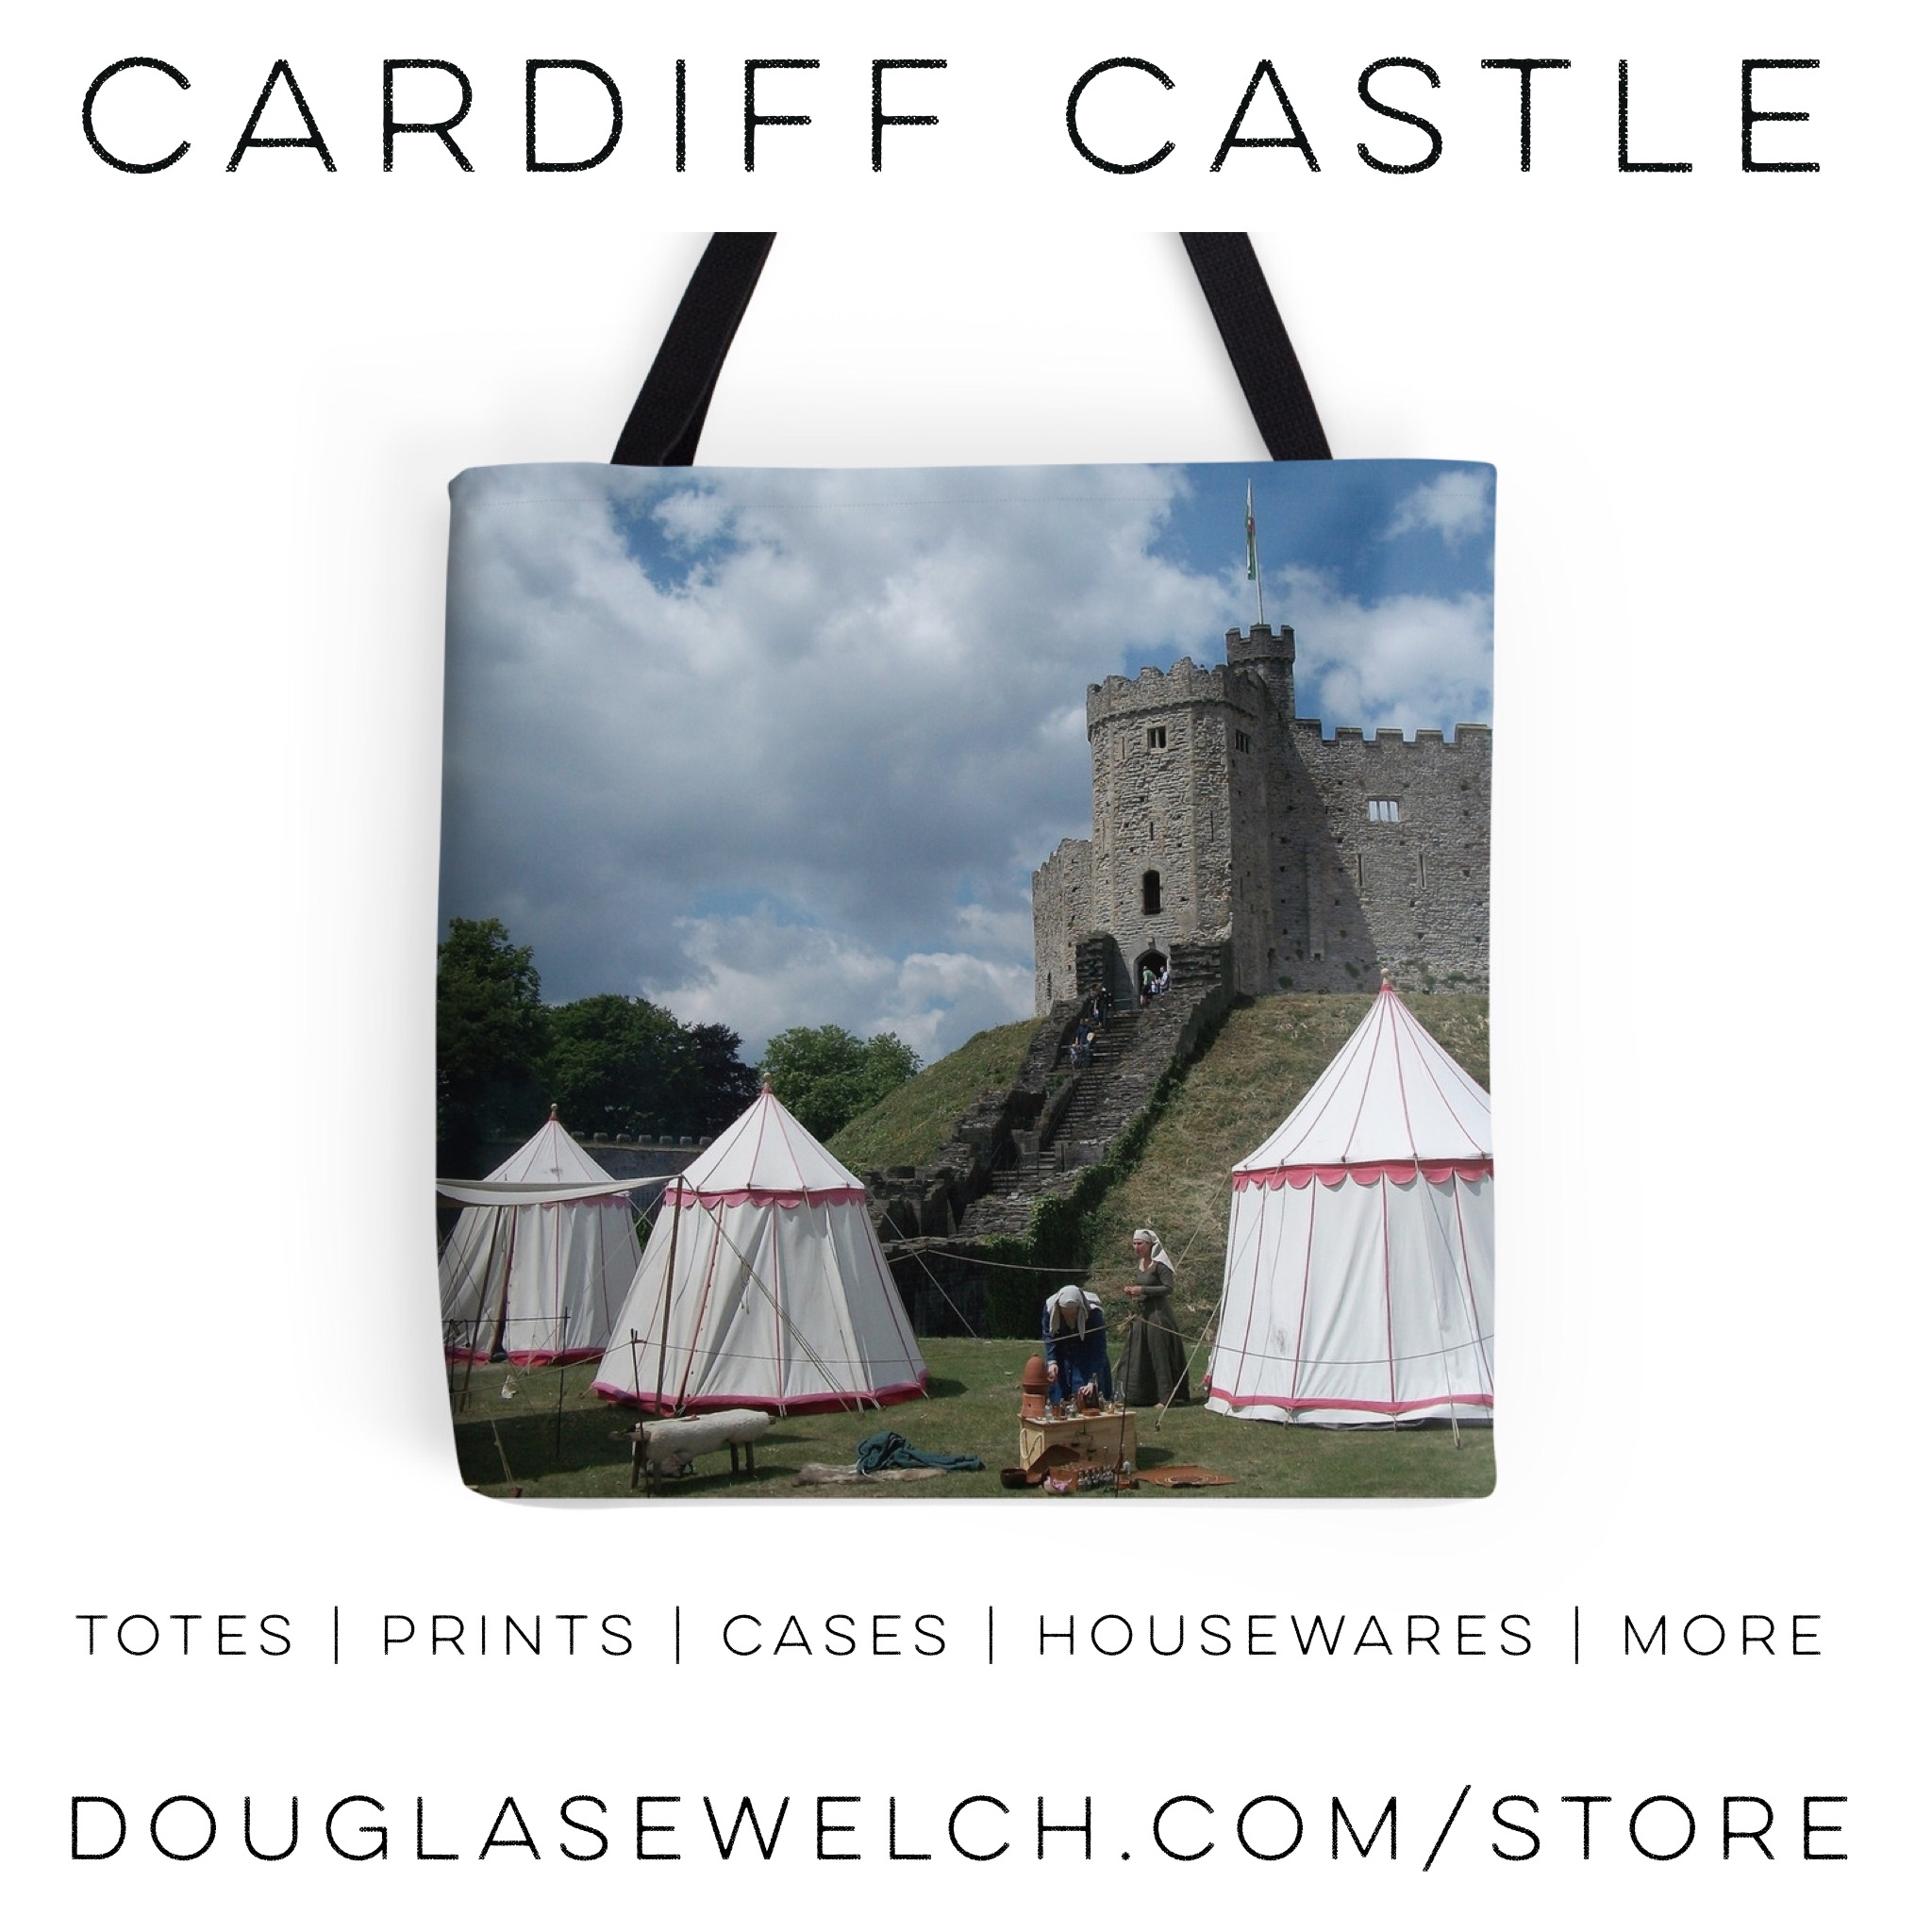 Bring Cardiff Castle home with this photo on totes and a variety of other products.